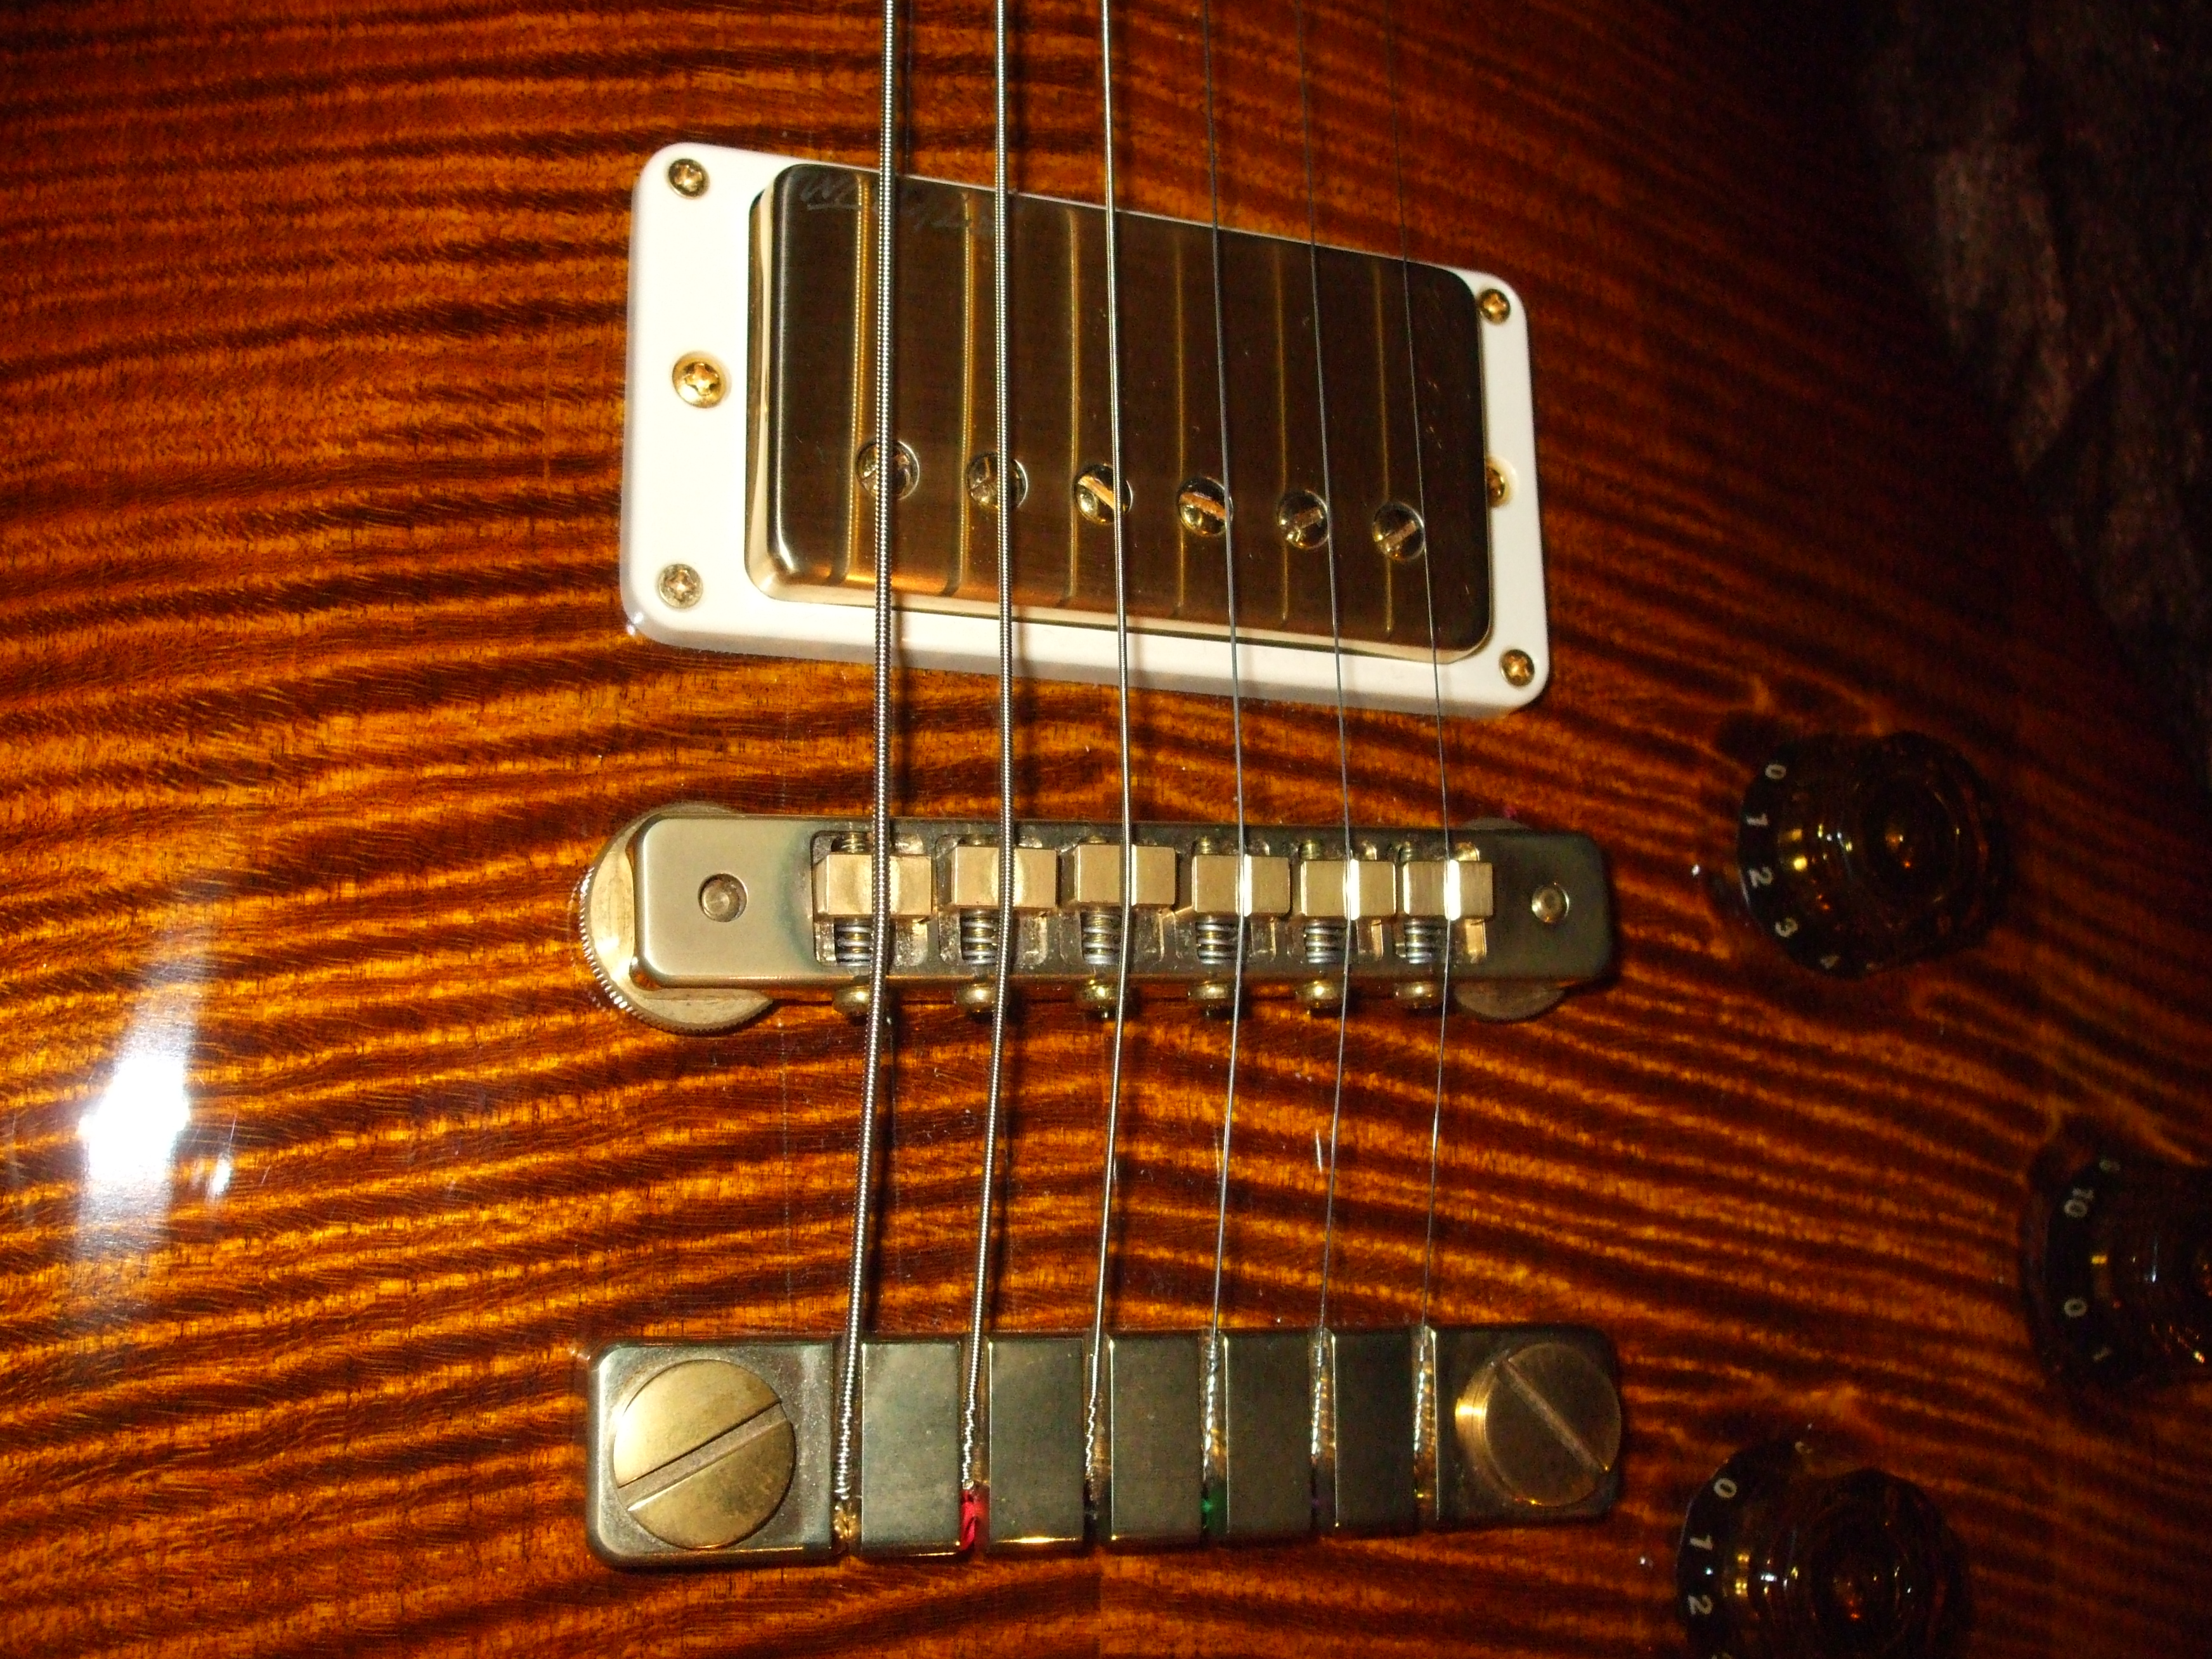 Gibson les paul standard 2012 image 1348451 audiofanzine for Yamaha cp50 review